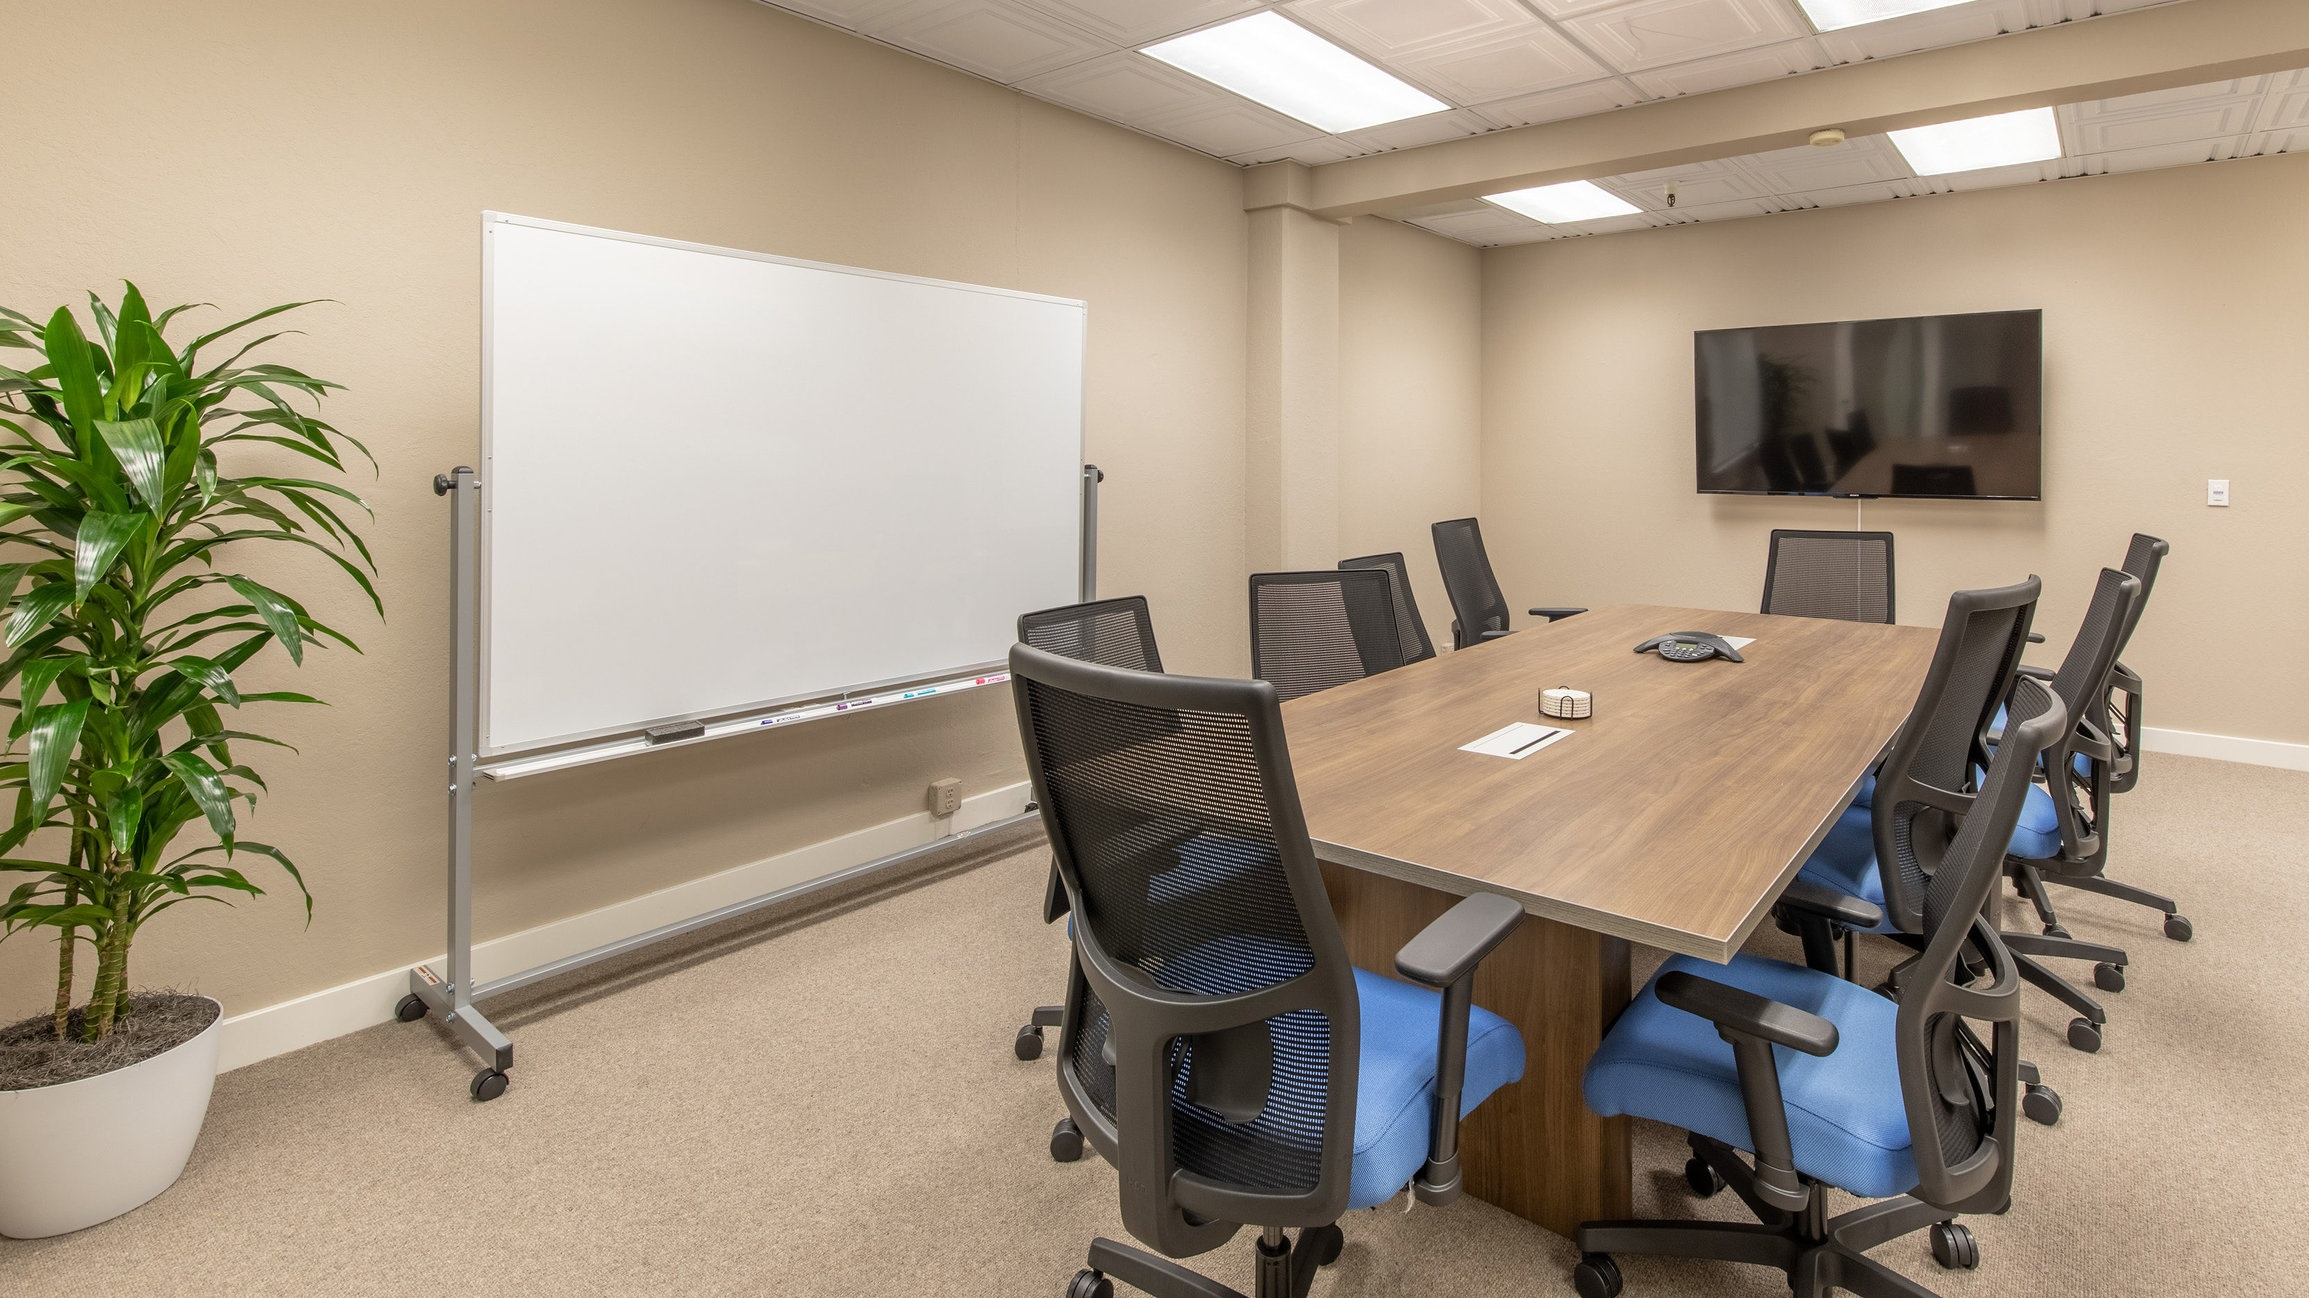 Copy of Conference room